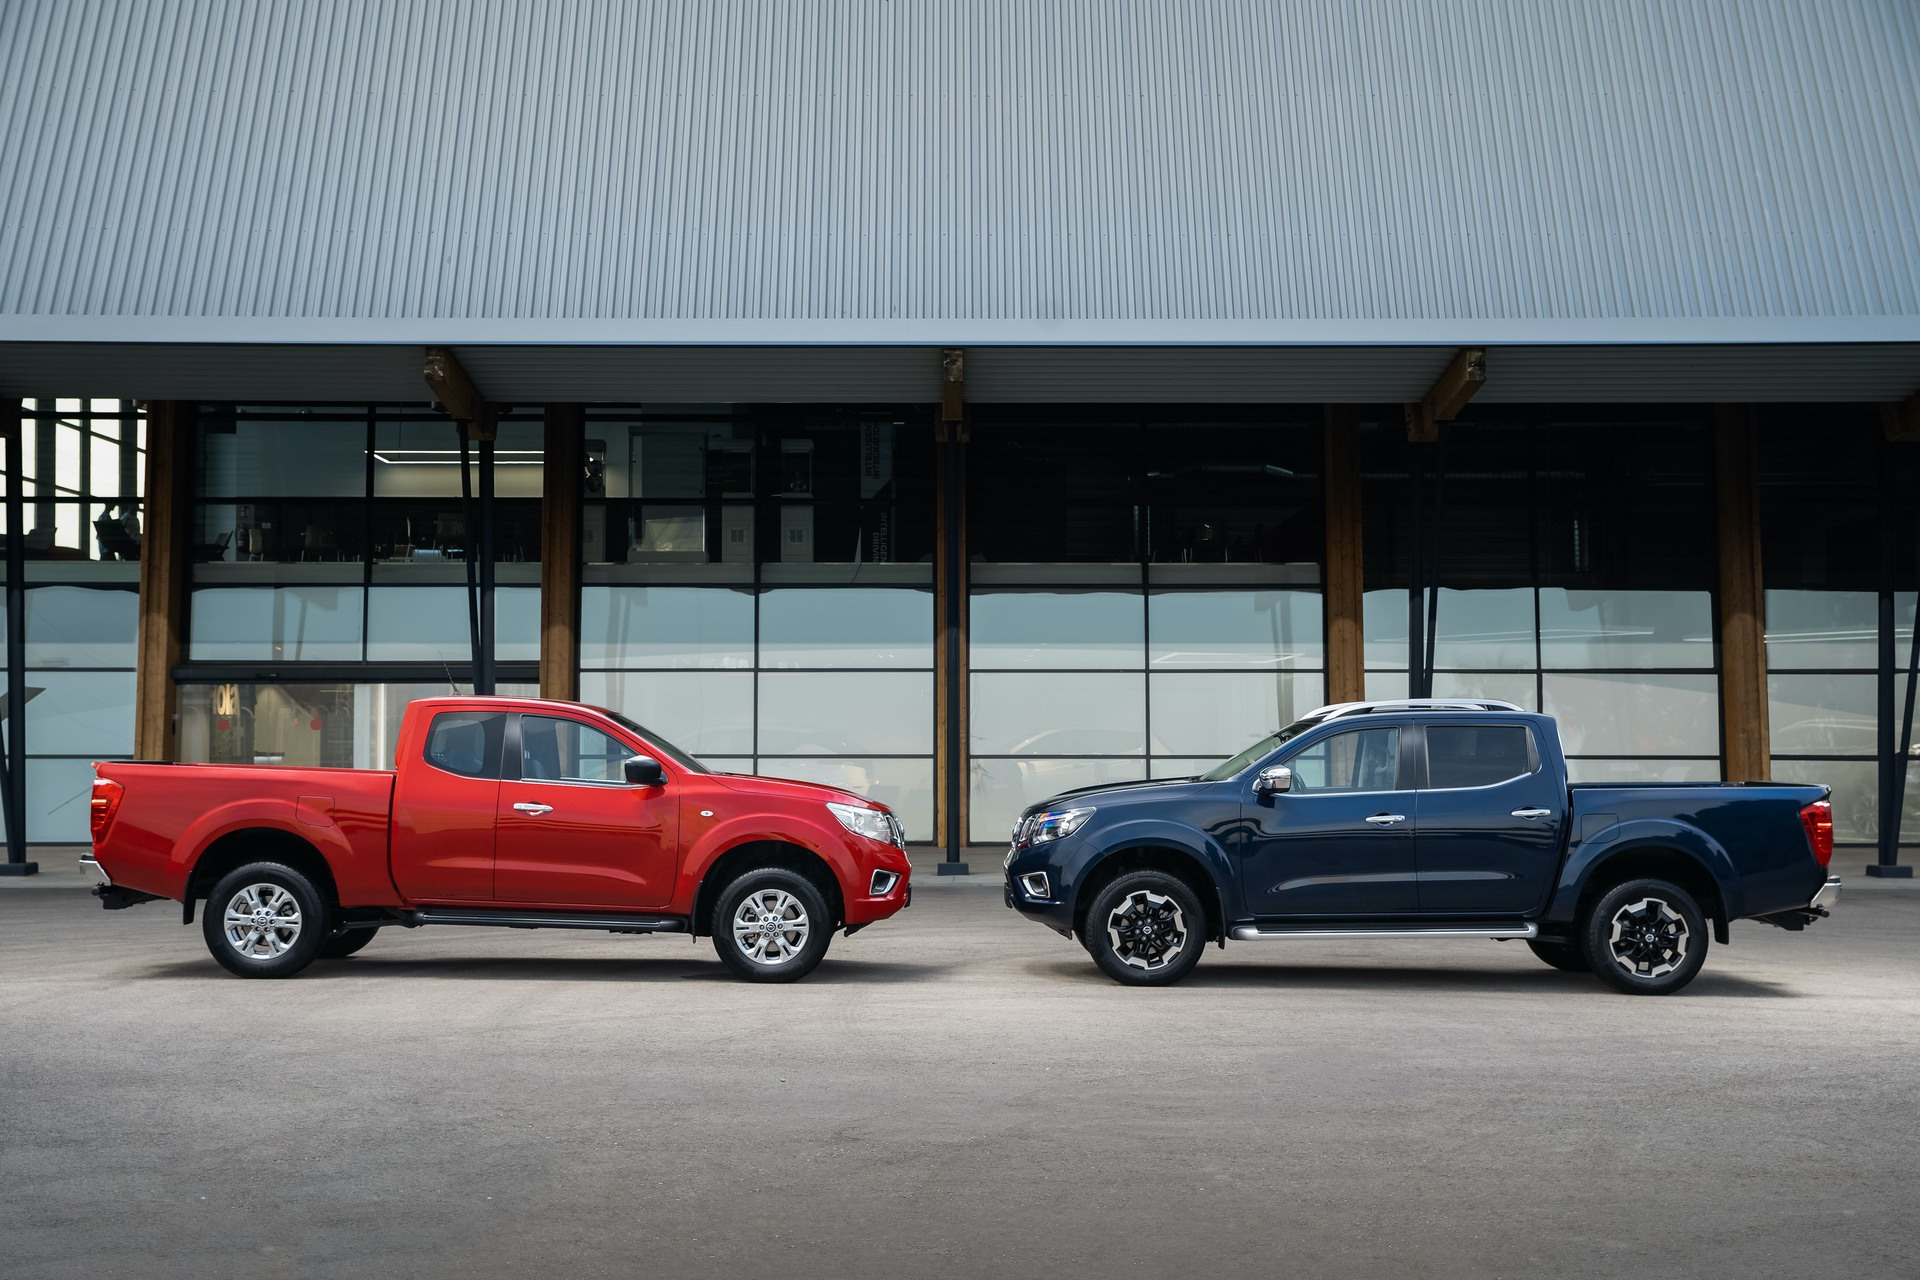 Nissan-Navara-King-Cab-Red-and-Double-Cab-Blue-2